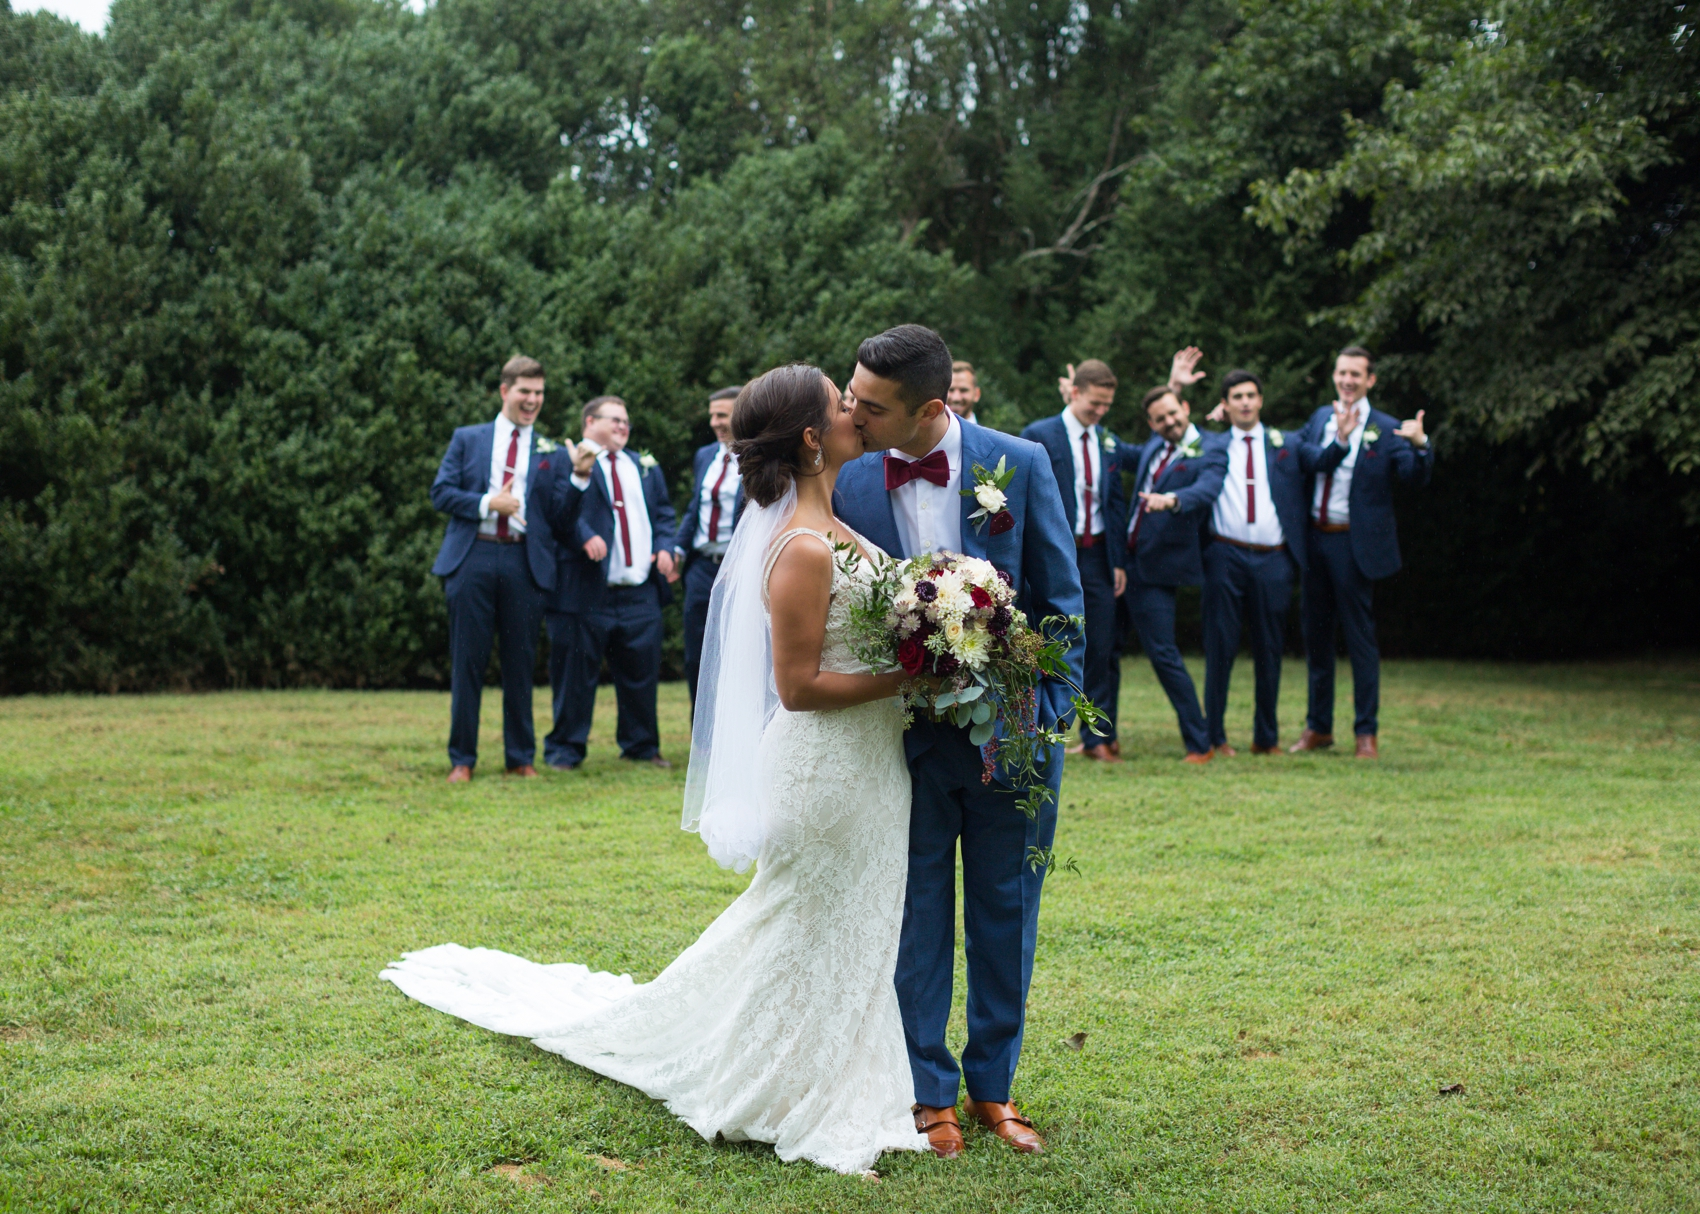 Ashlawn-Highland-Virginia-Wedding-2018-0335.jpg